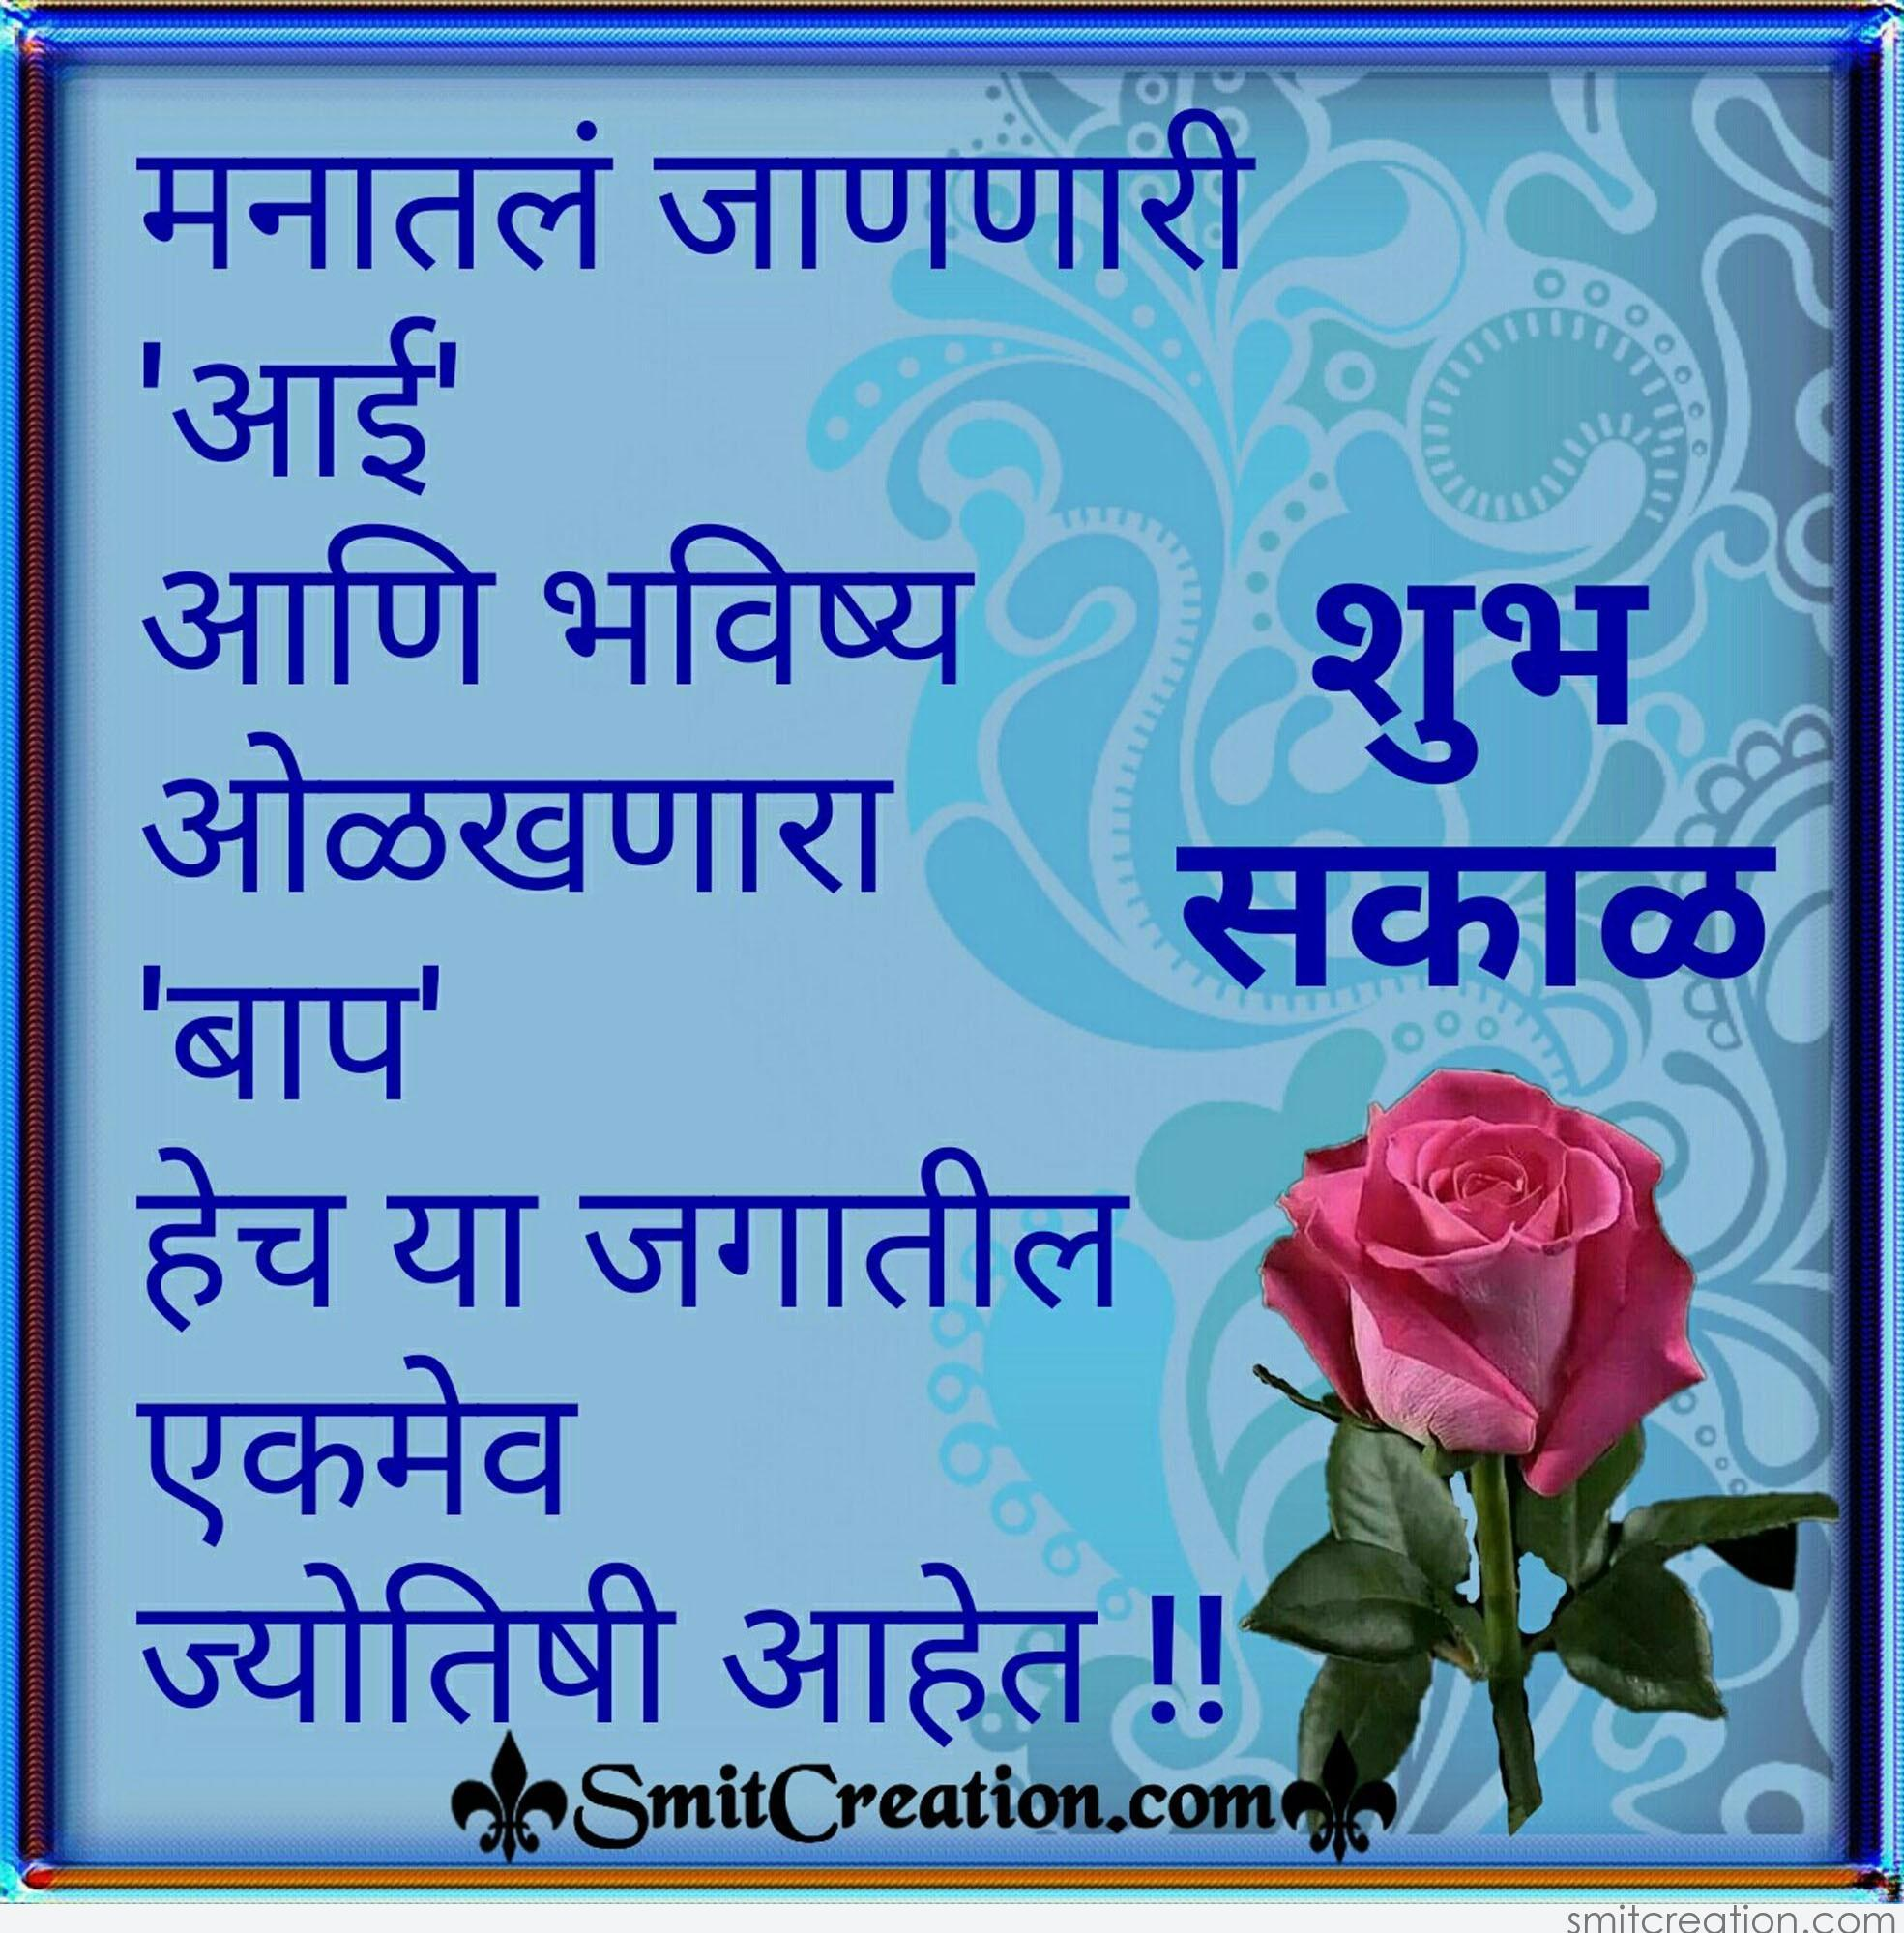 Shubh Sakal Quote Pictures And Graphics